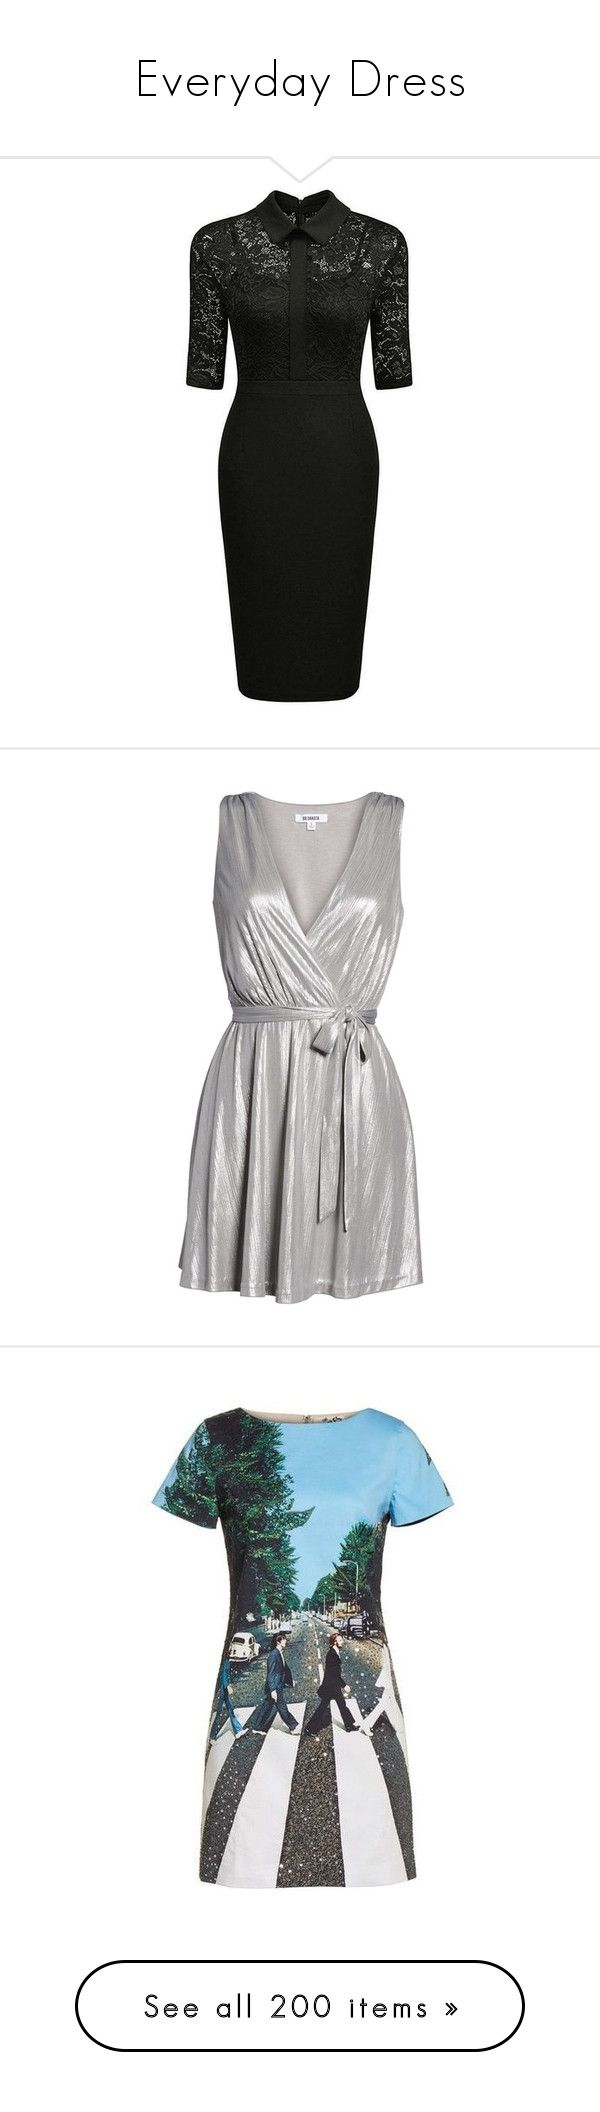 """""""Everyday Dress"""" by divaangelique ❤ liked on Polyvore featuring dresses, body conscious dress, bodycon dress, body con dress, bodycon cocktail dresses, short dresses, silver, silver dresses, retro cocktail dresses and white retro dress"""